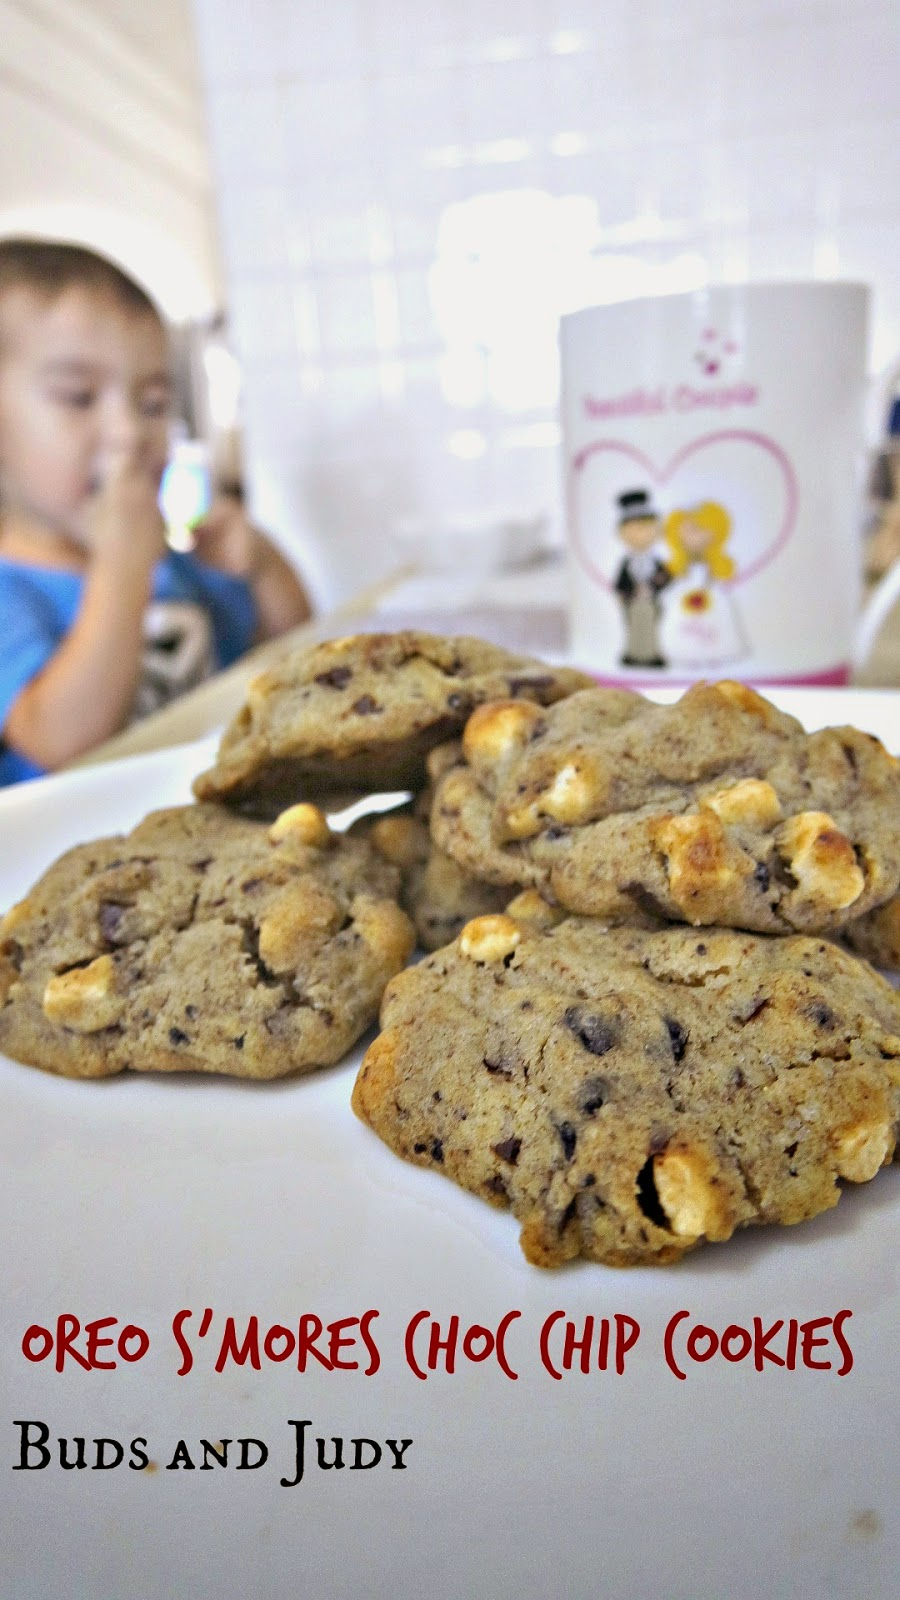 How to make S'mores Cookies. Oreo S'mores Chocolate Chip Cookies.